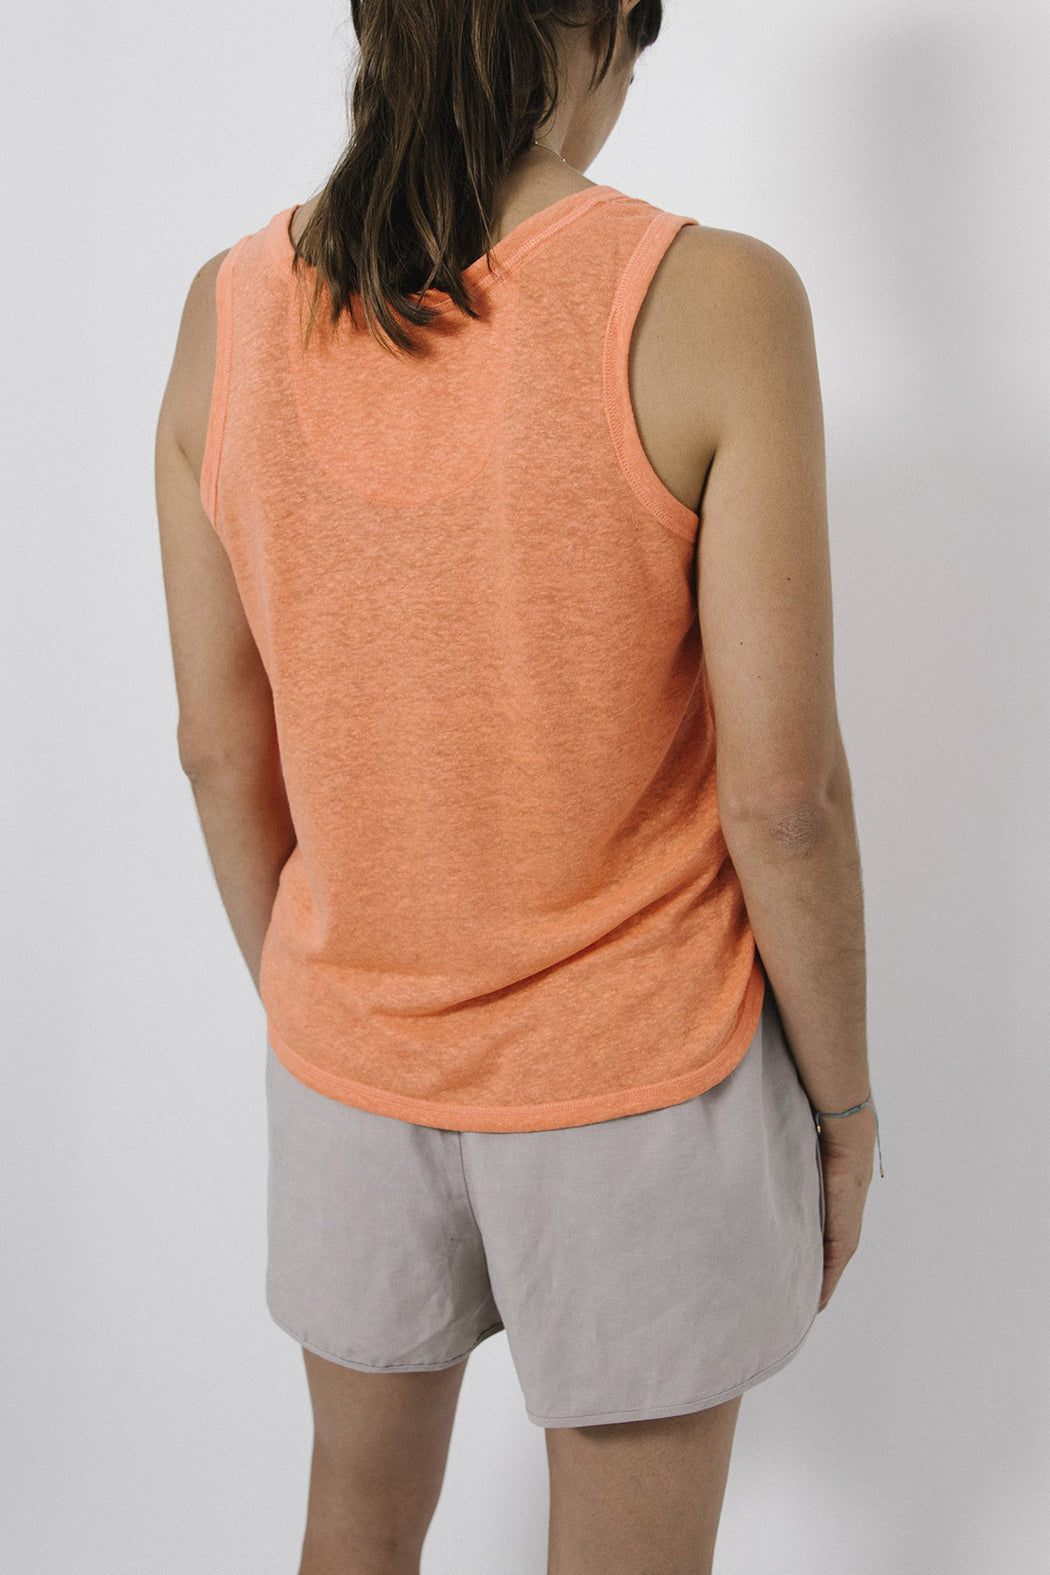 HASTINGS T-Shirt peach